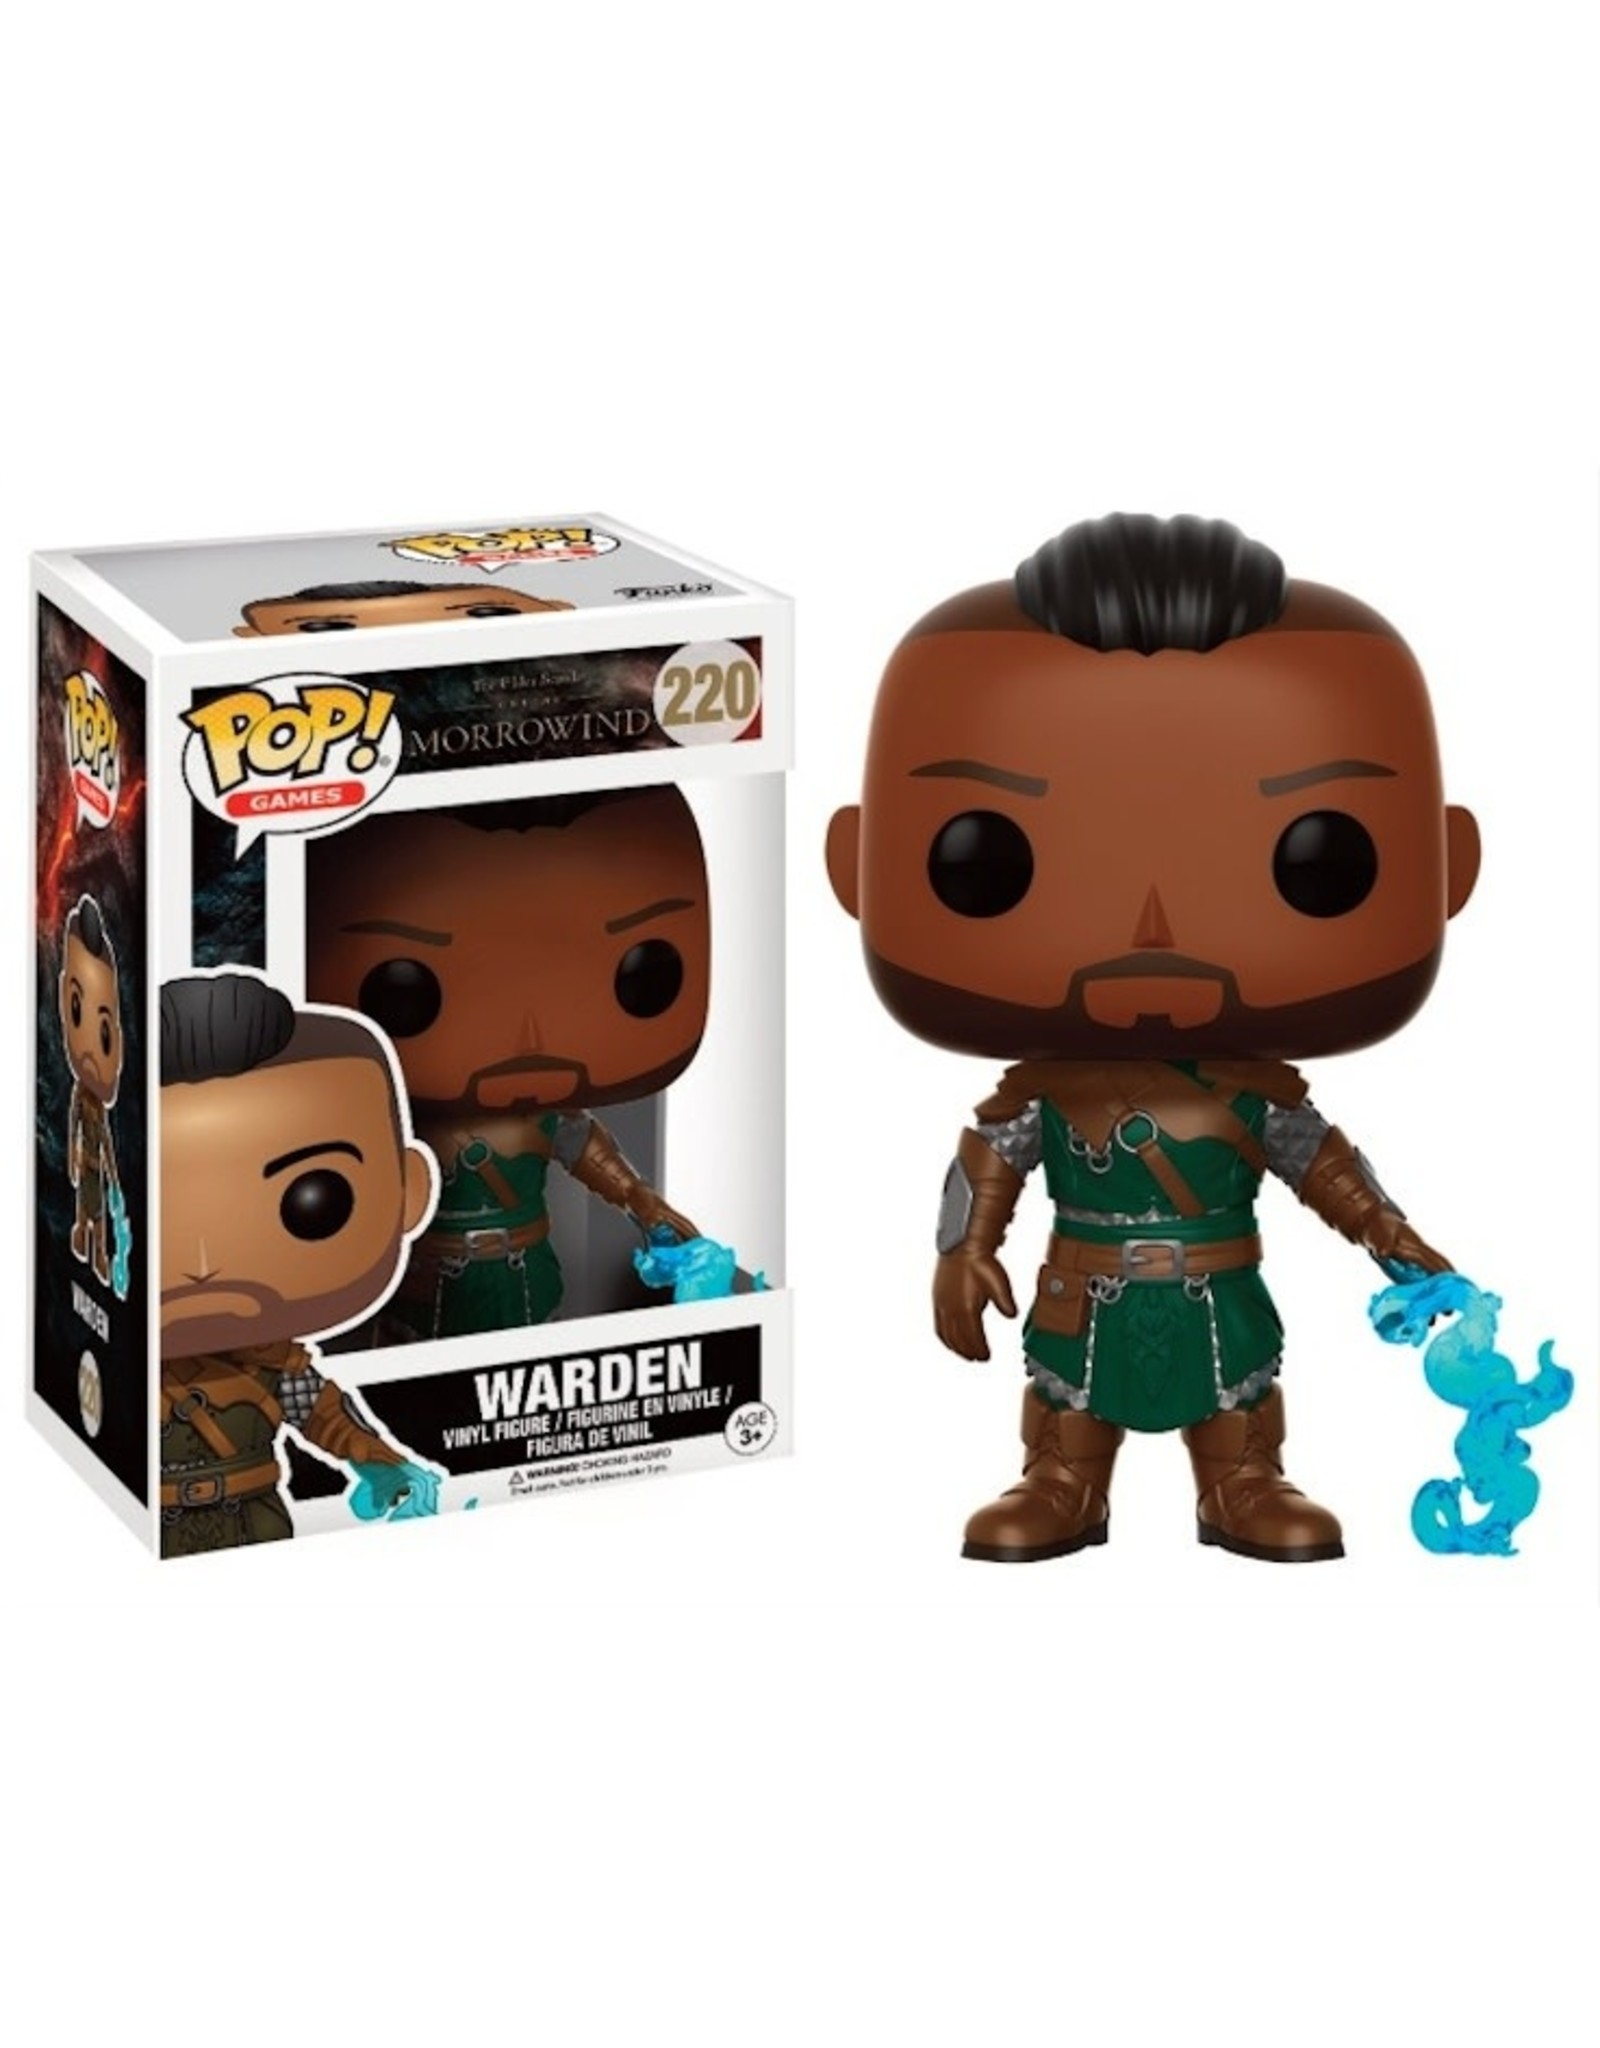 MORROWIND - Bobble Head POP N° 220 - Warden